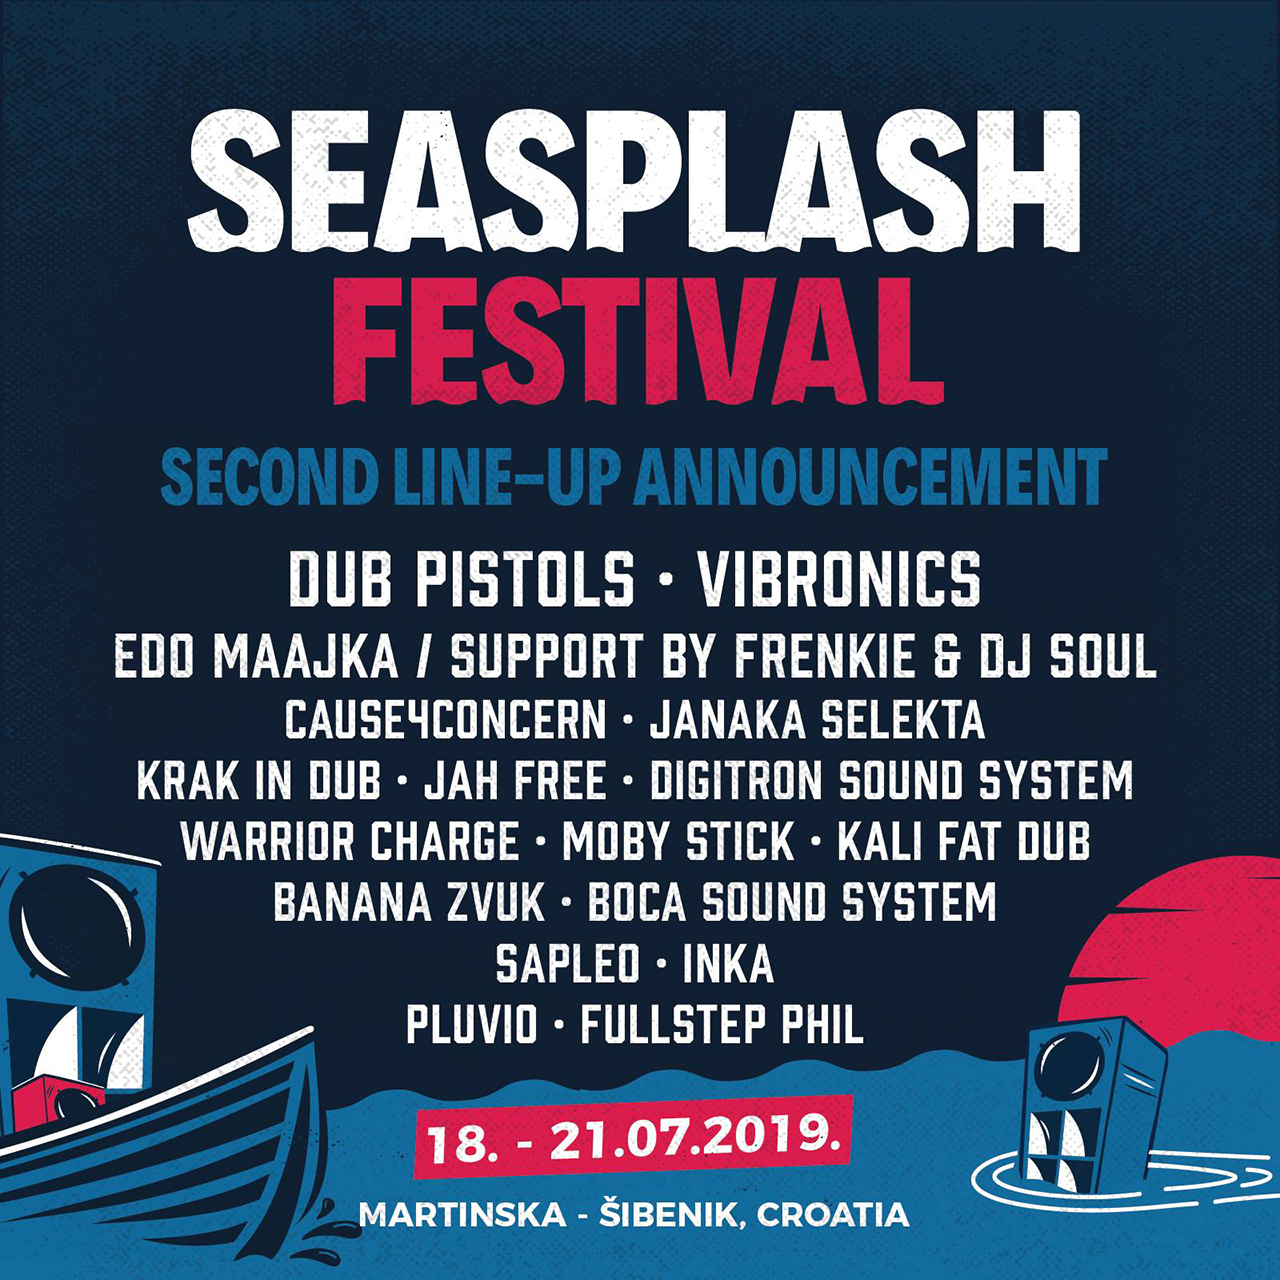 Seasplash 2019 - 2nd Line-up Announcement